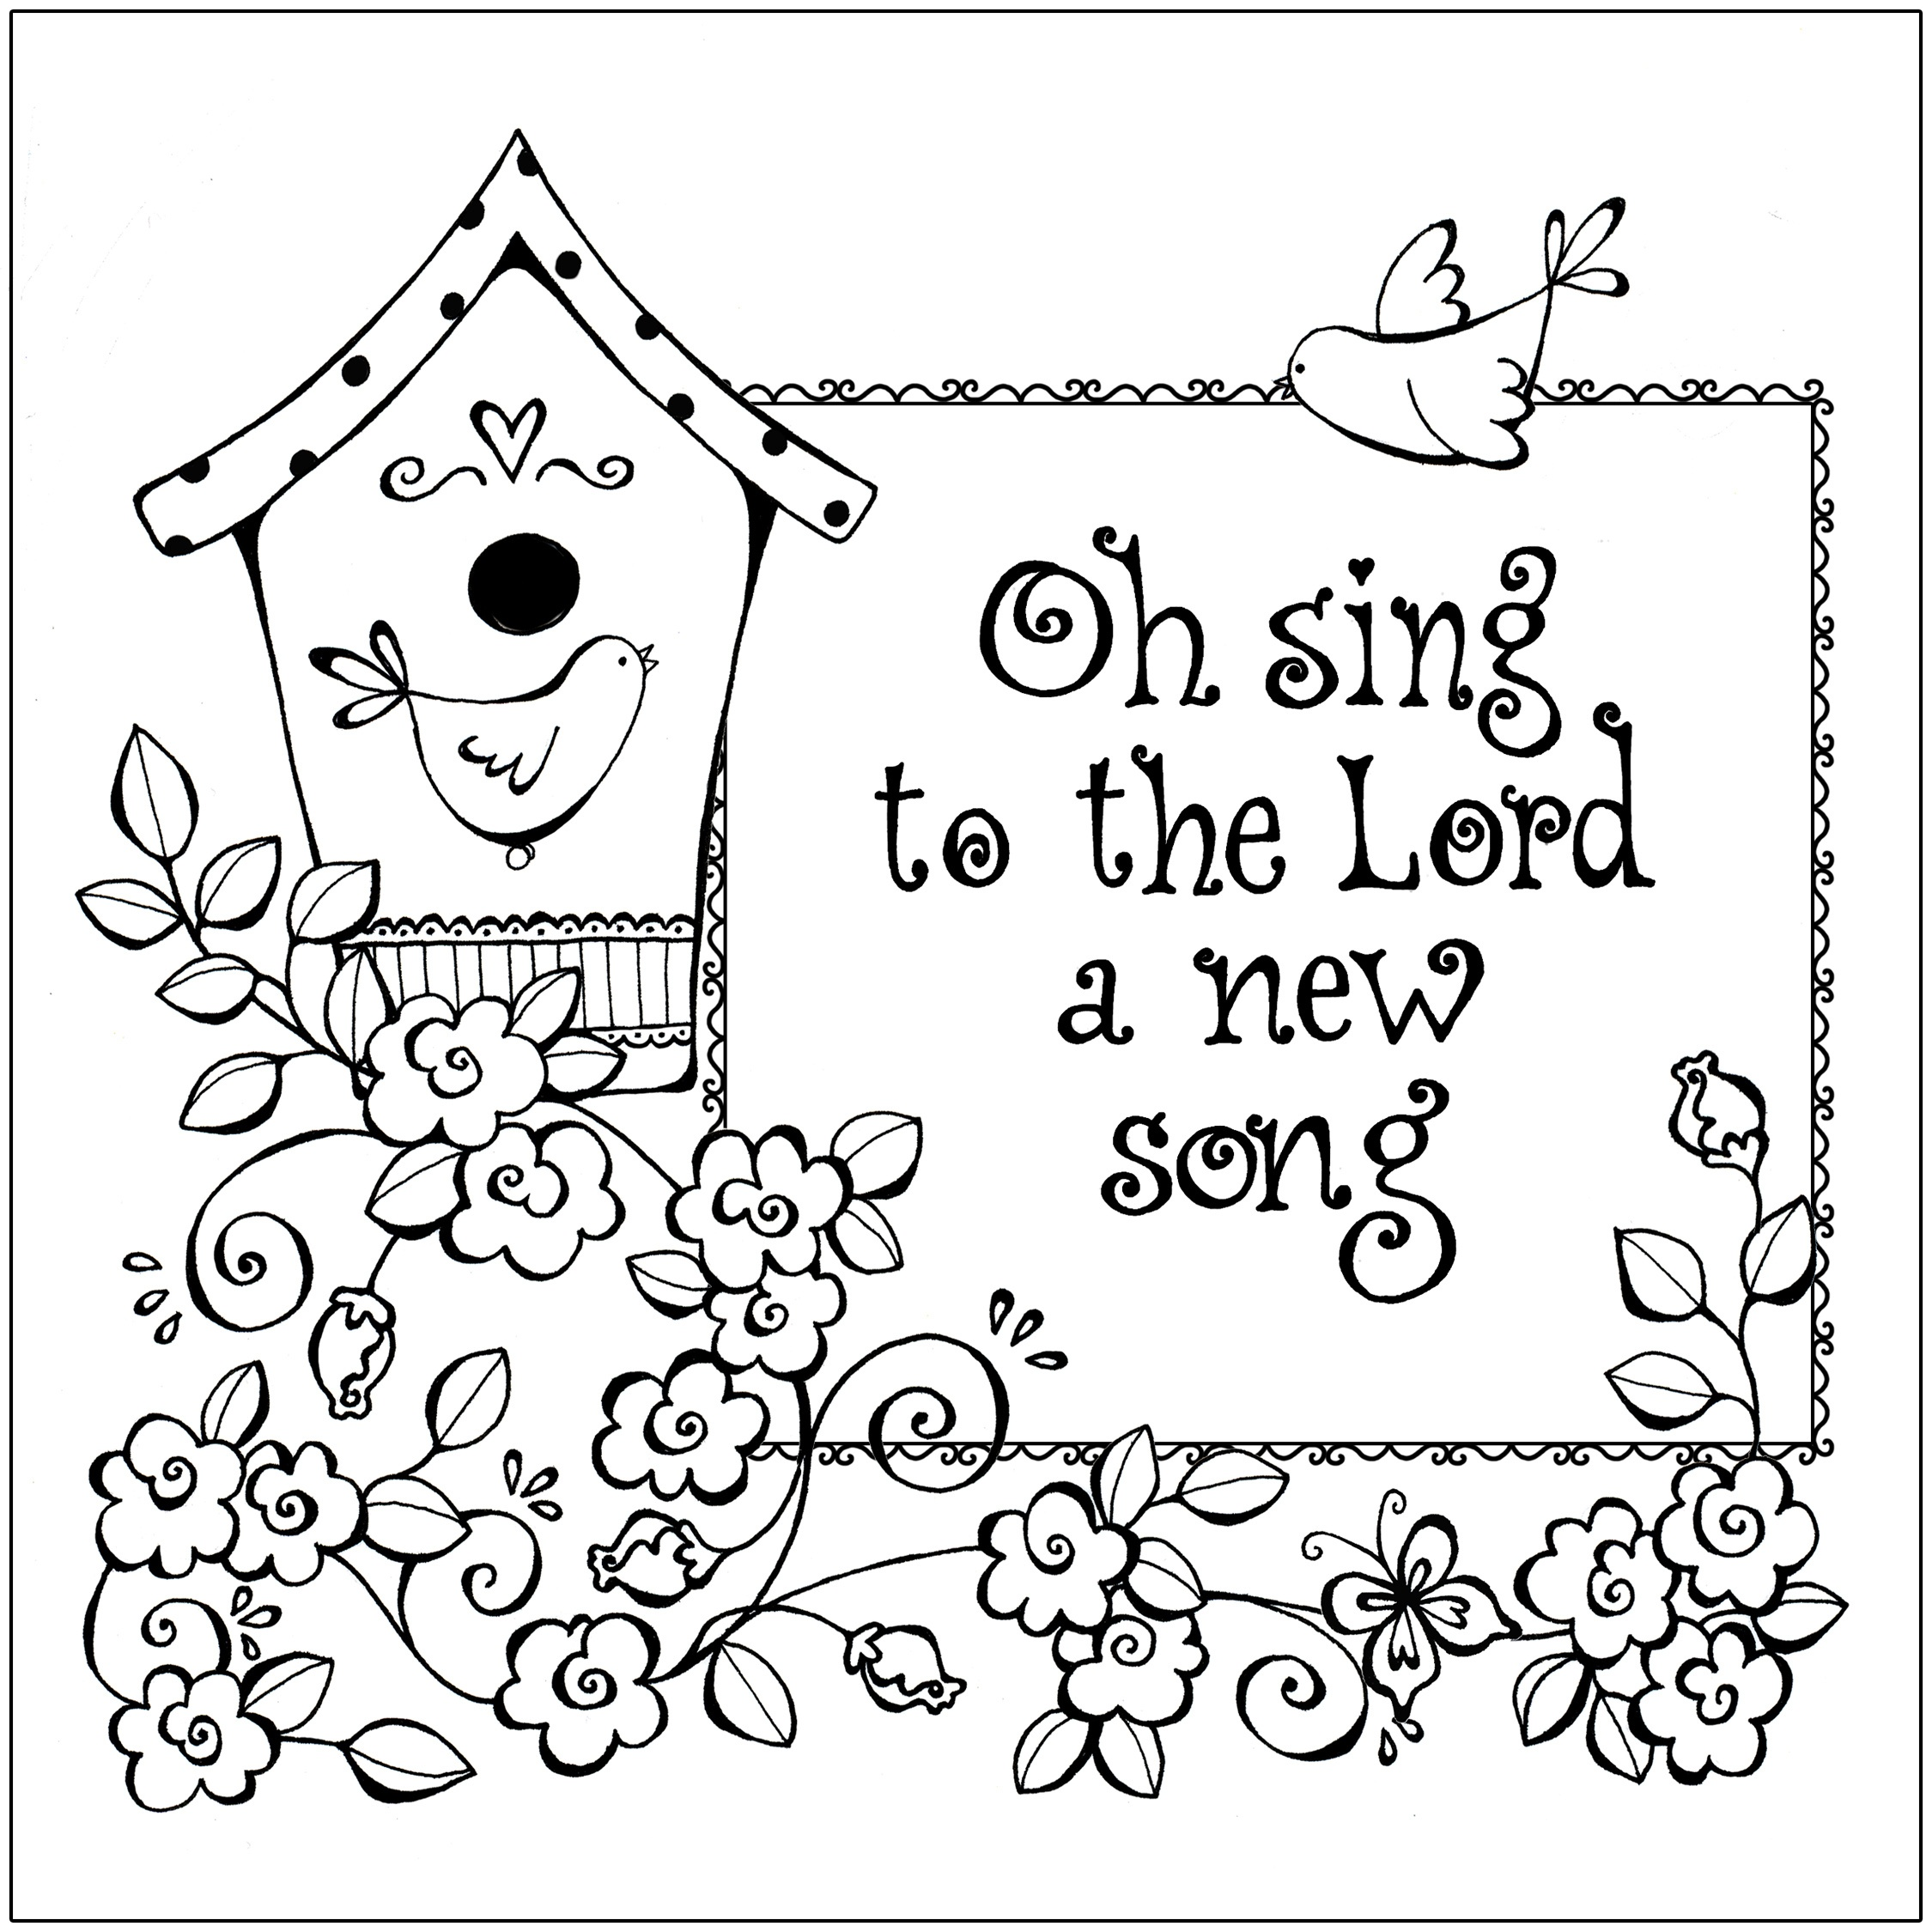 Free Printable Christian Coloring Pages For Kids - Best Coloring - Free Printable Sunday School Coloring Sheets